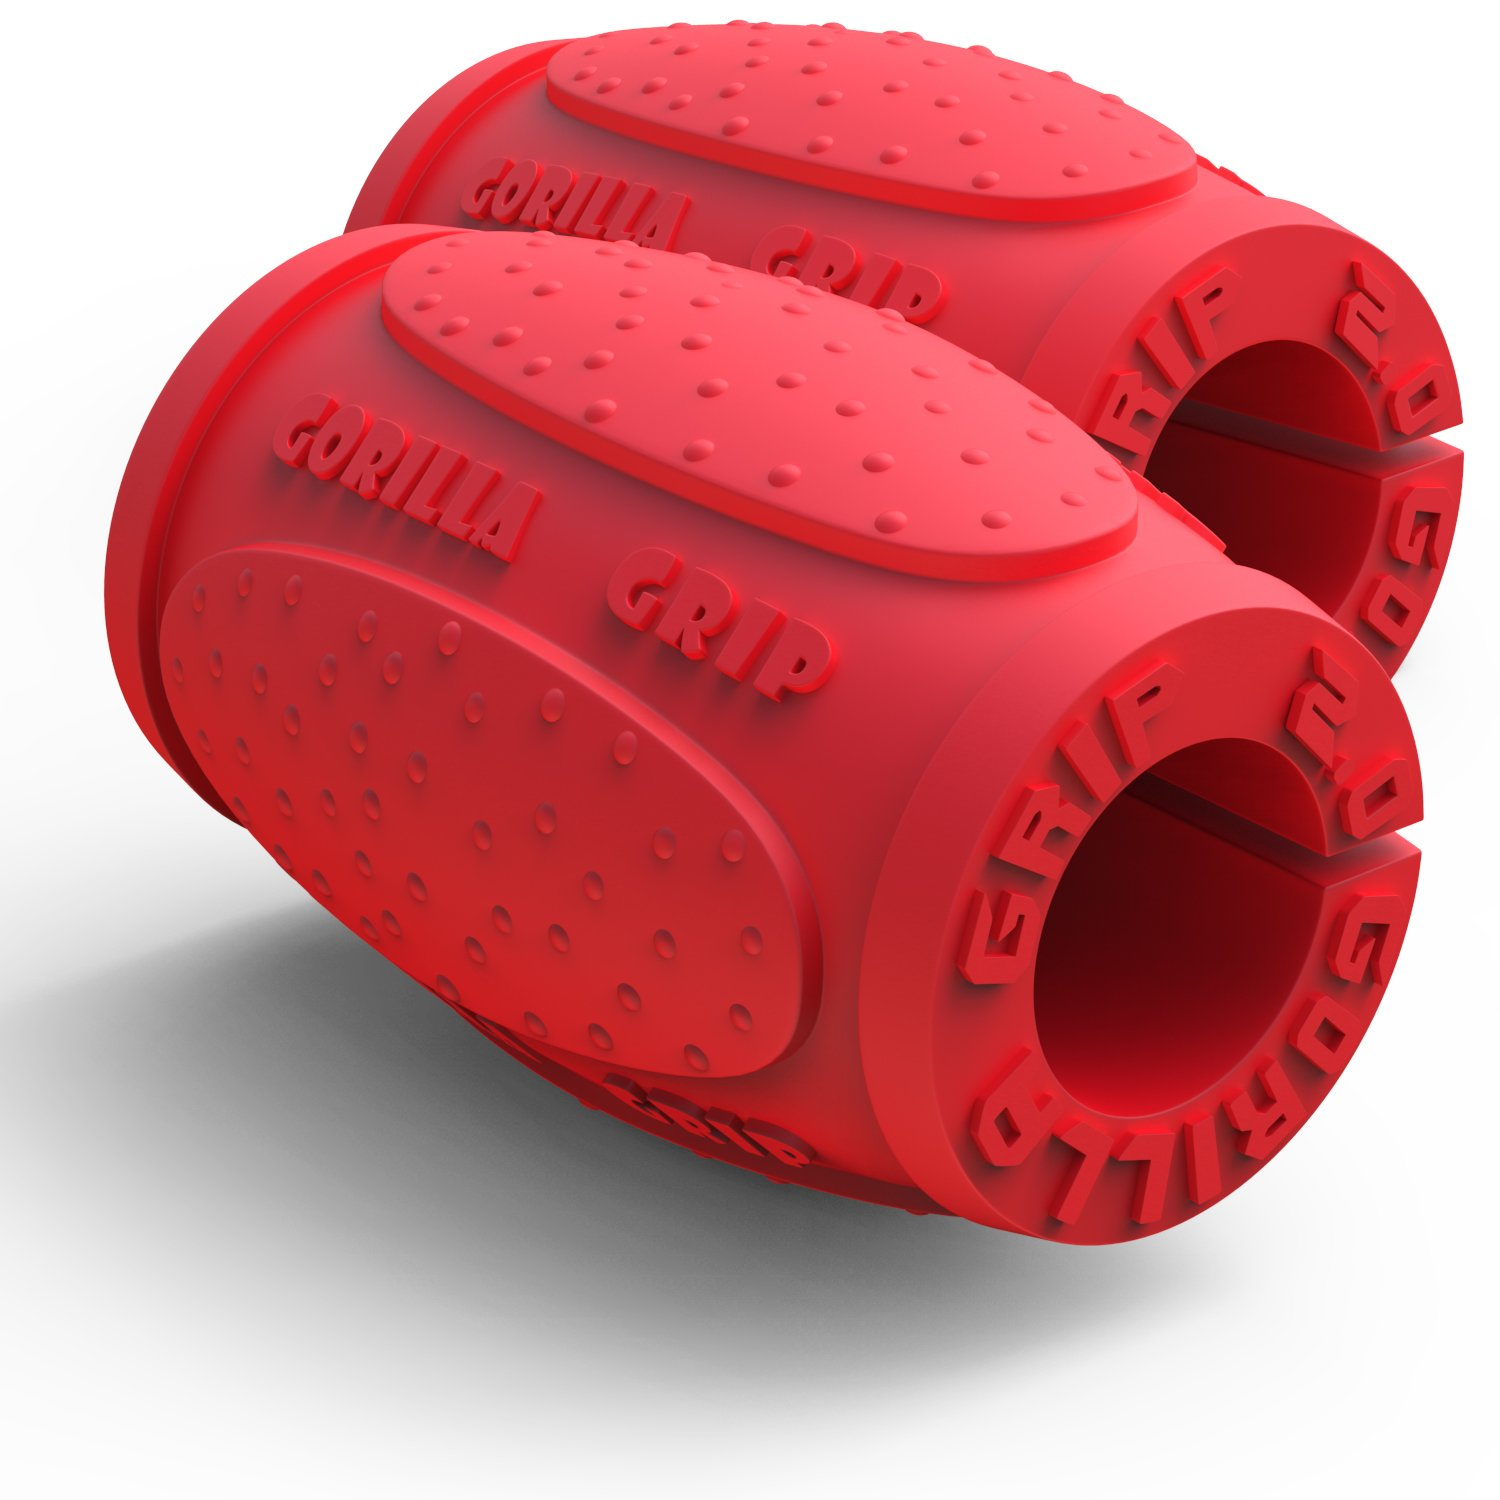 Red 1.0 (Beginner Thick Grip) Gorilla Grip Weightlifting Thick Grips  Fitness Accessory for Barbells, Dumbbells & Kettlebells  Rapidly Strengthen Forearms, Biceps, Chest & Triceps  CrossFit, Bodybuilding and Strongman Training